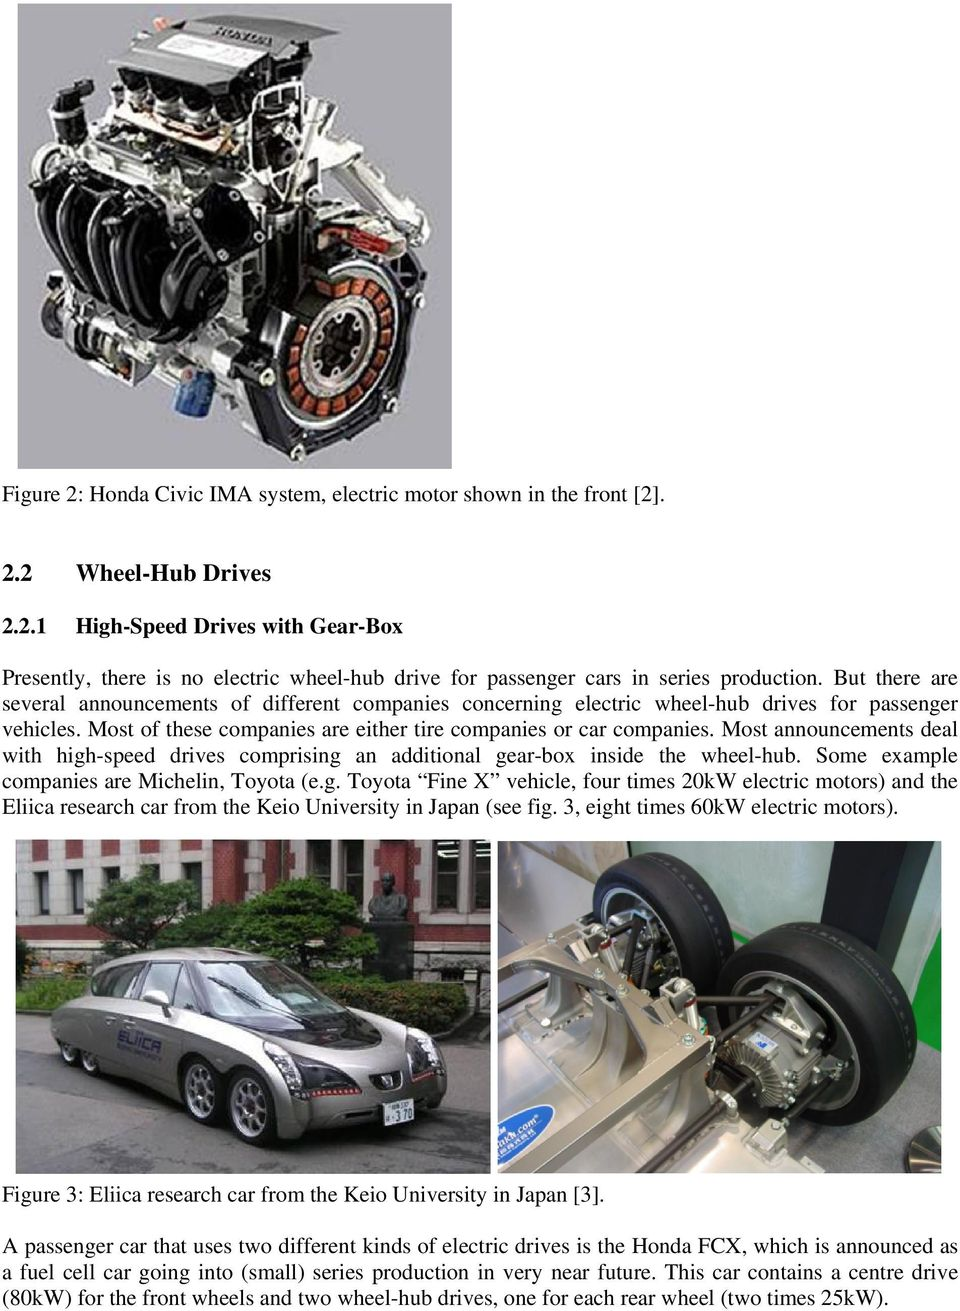 ELECTRIC TRACTION FOR AUTOMOBILES COMPARISON OF DIFFERENT